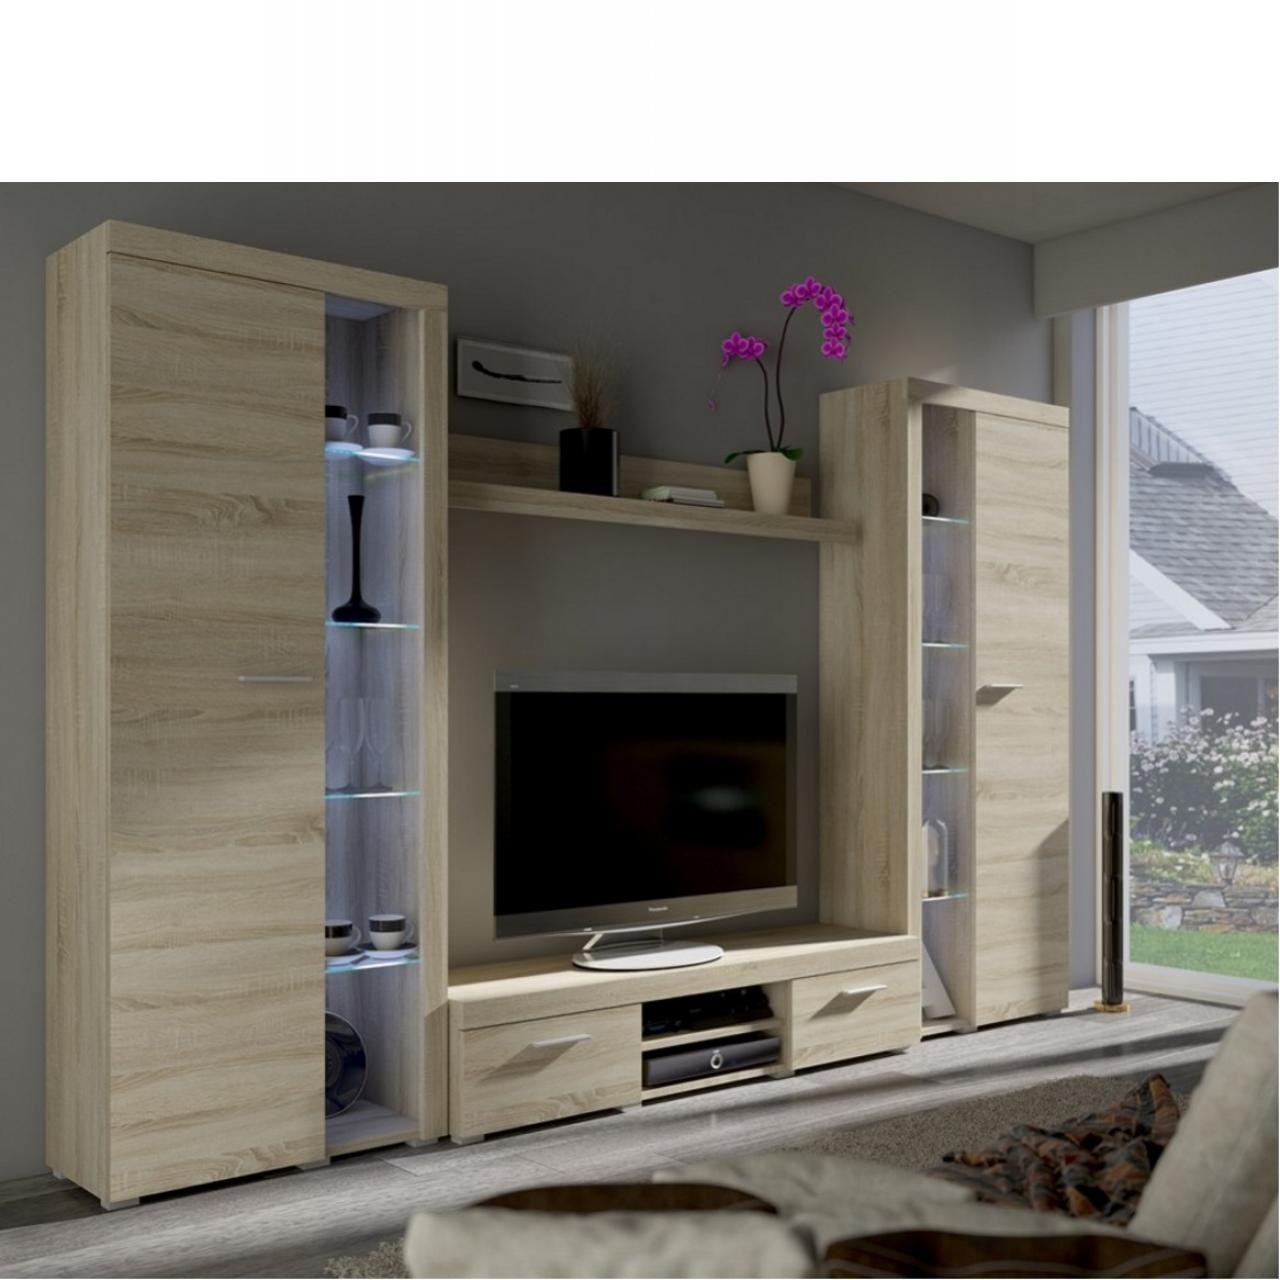 wohnw nde online kaufen m bel j hnichen center gmbh. Black Bedroom Furniture Sets. Home Design Ideas